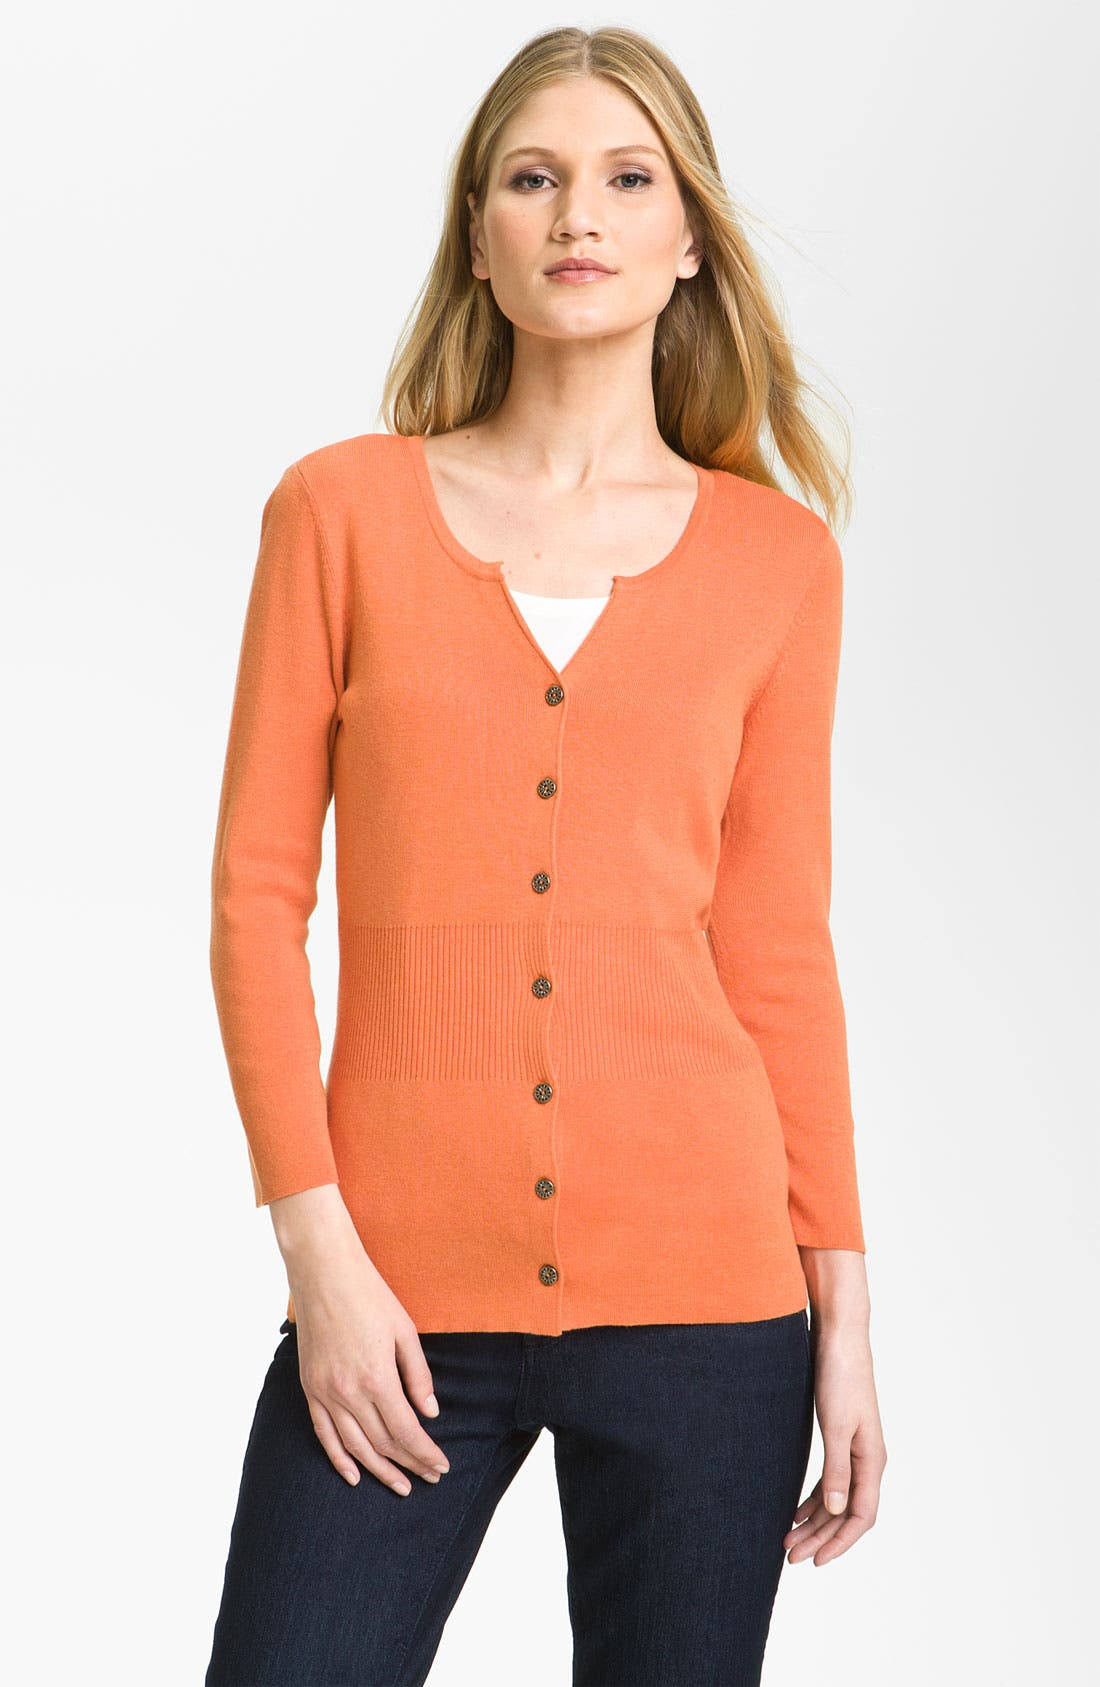 Alternate Image 1 Selected - Nic + Zoe 'Back of the Chair' Cardigan (Petite)